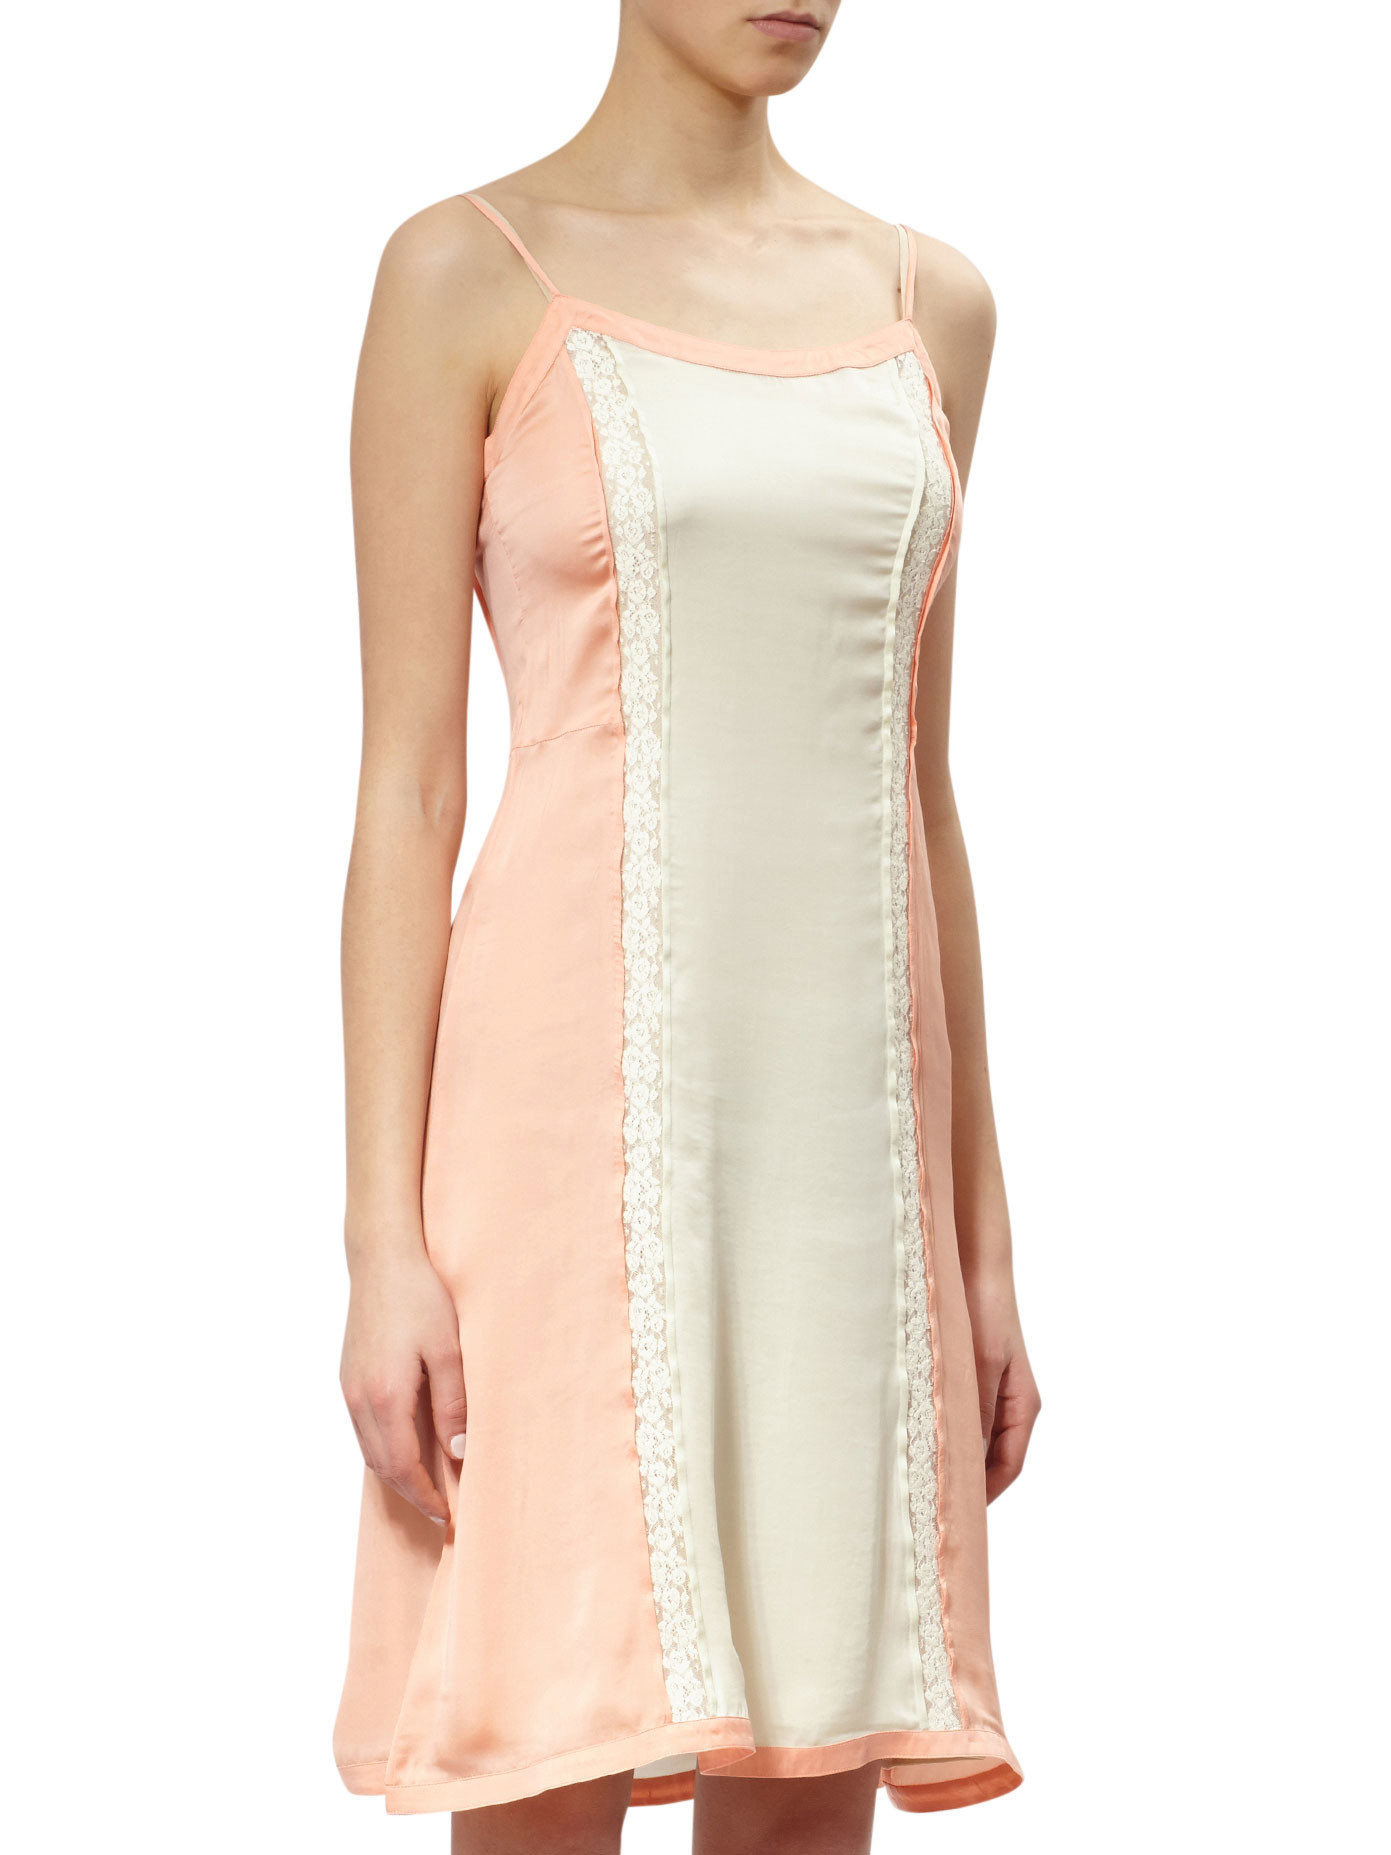 PR522 BI-COLOR SILK SATIN SLIP DRESS WITH LACE PANEL